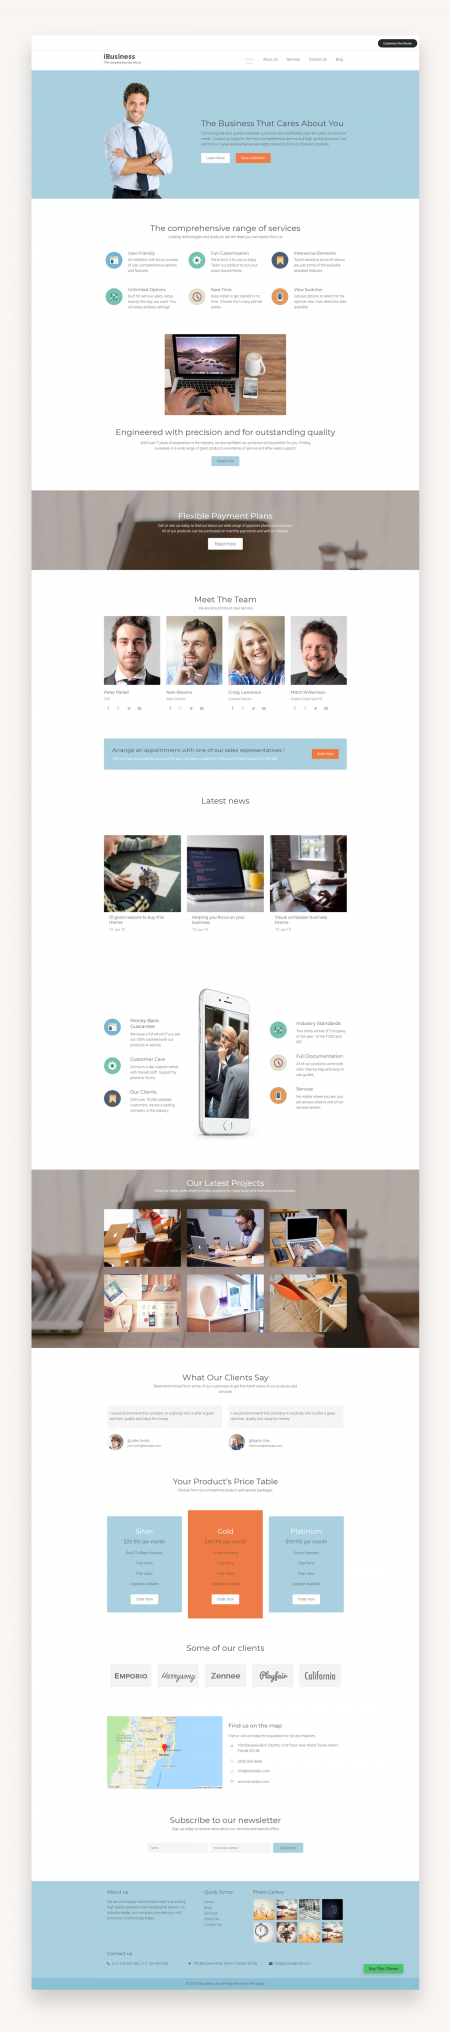 Ibusiness - Responsive Business WordPress Theme